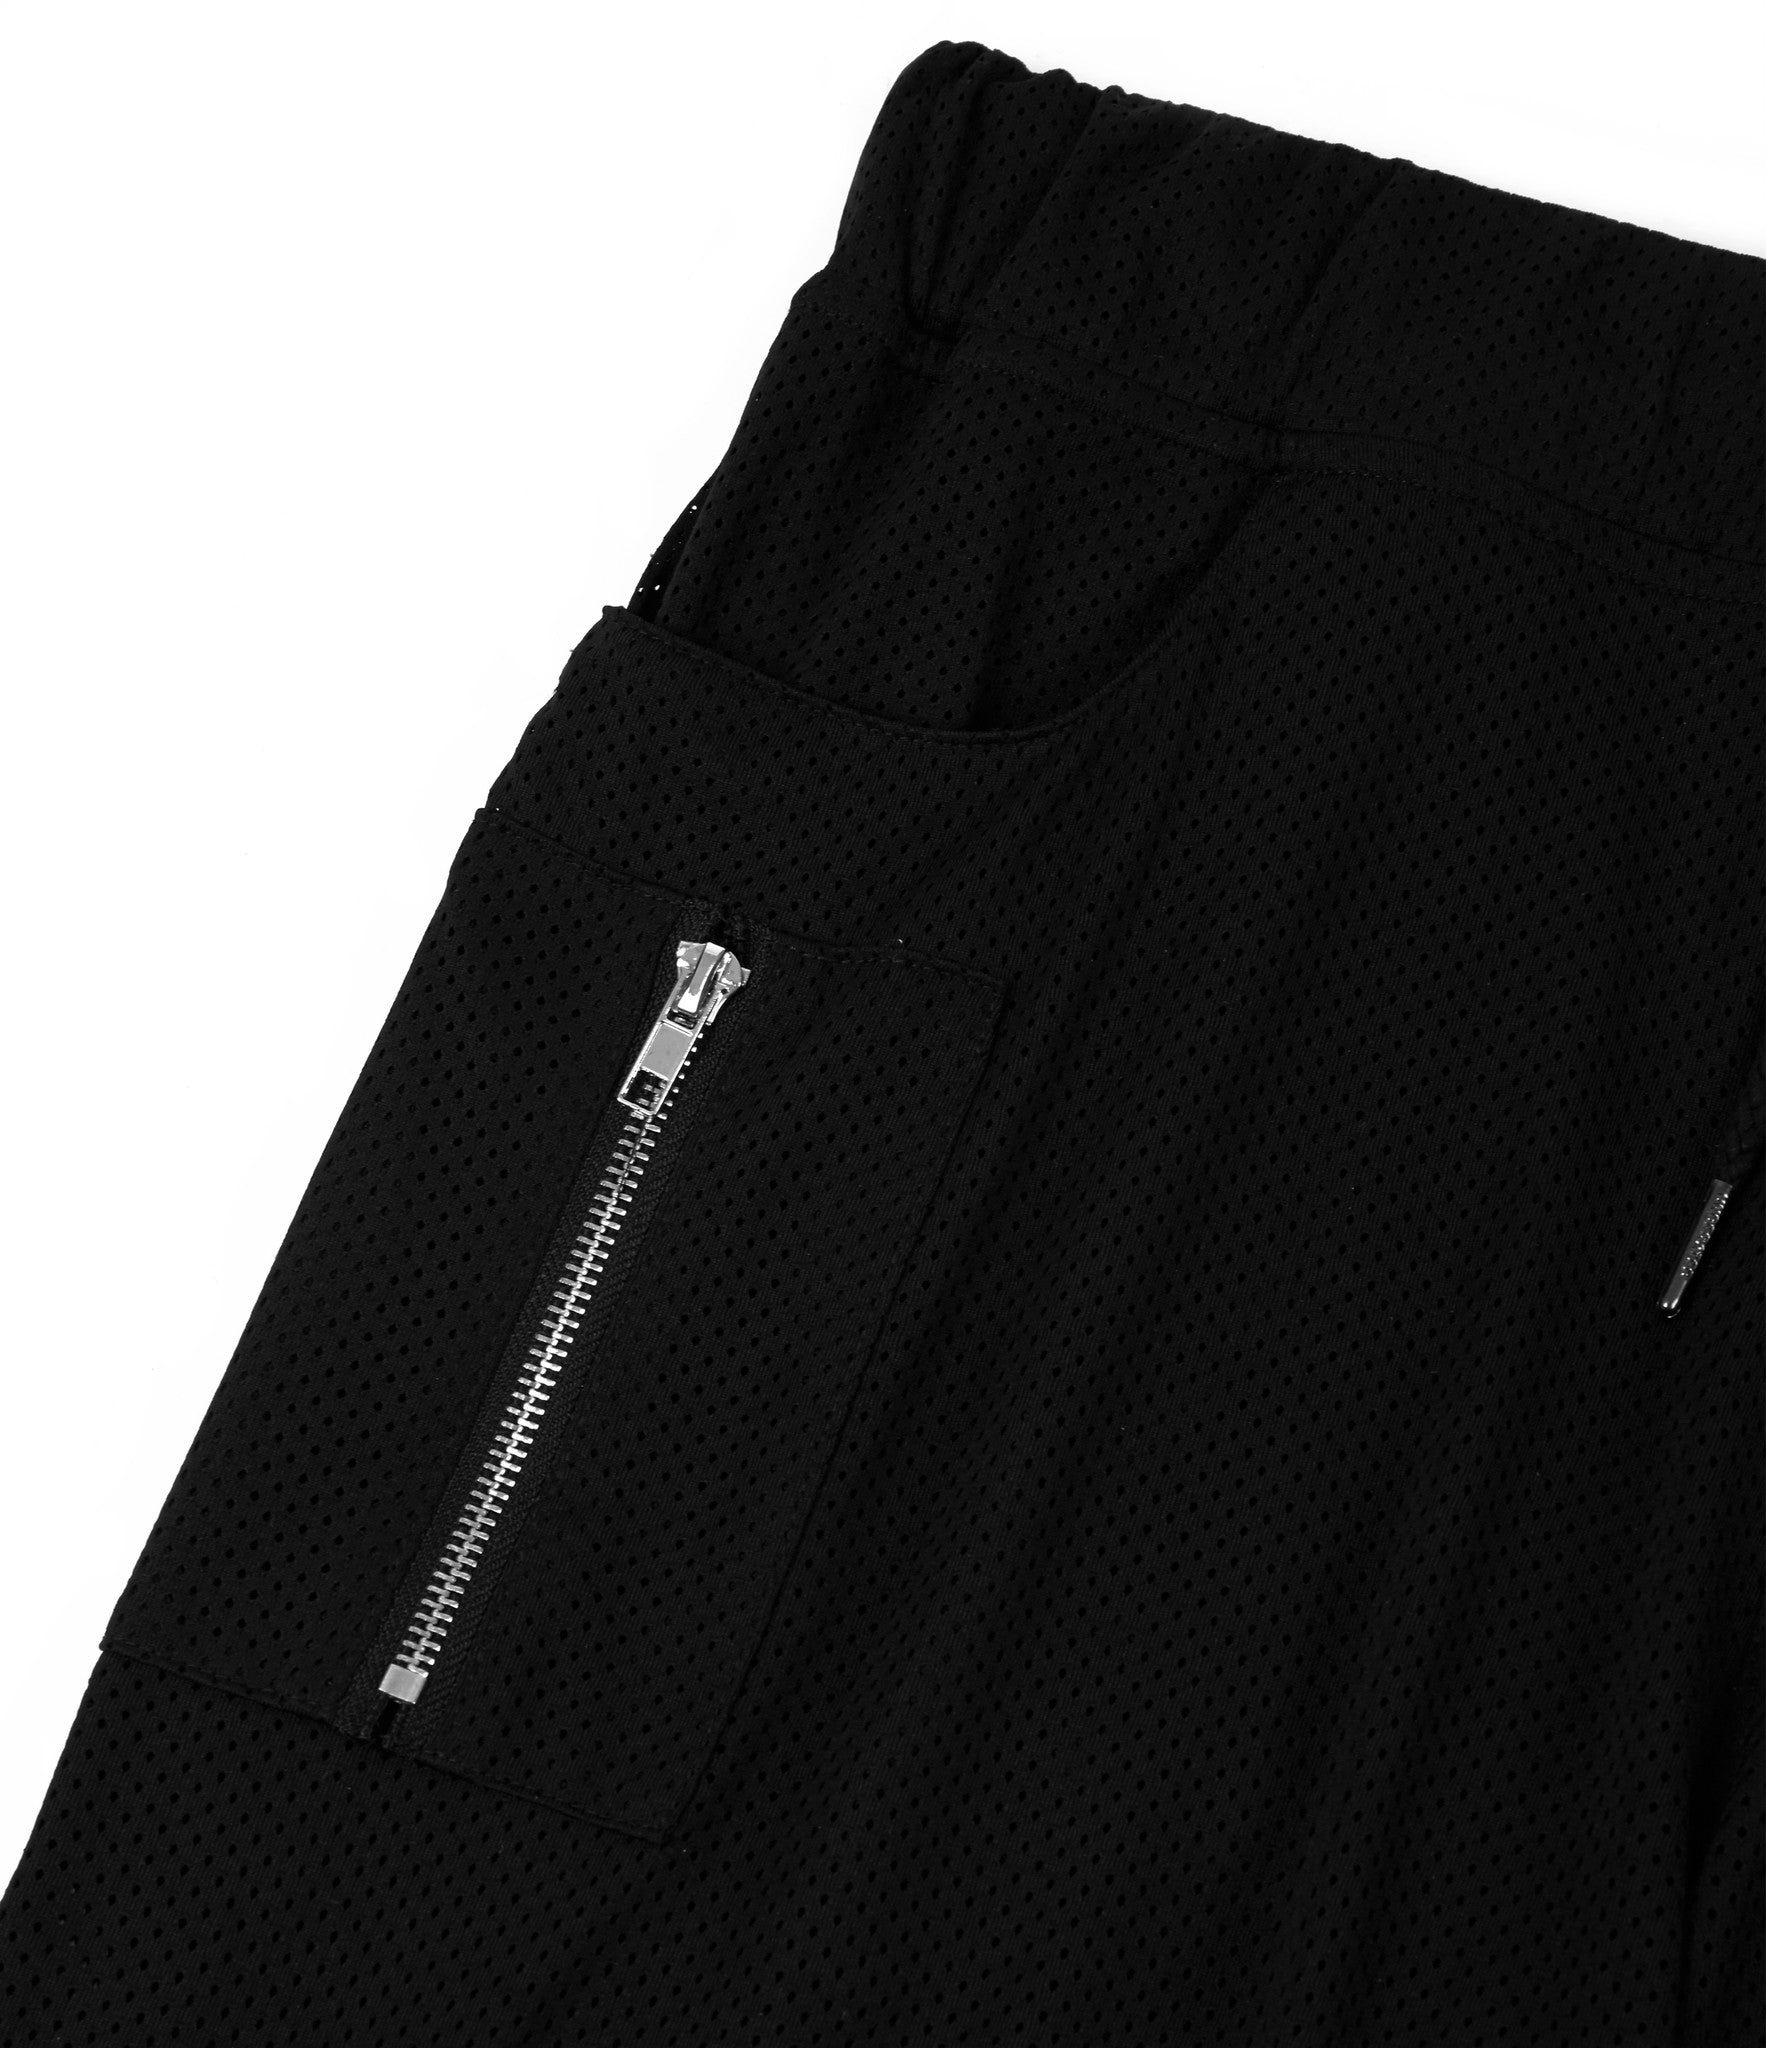 SR283 Utility Airtex Shorts - Black - underated london - underatedco - 4